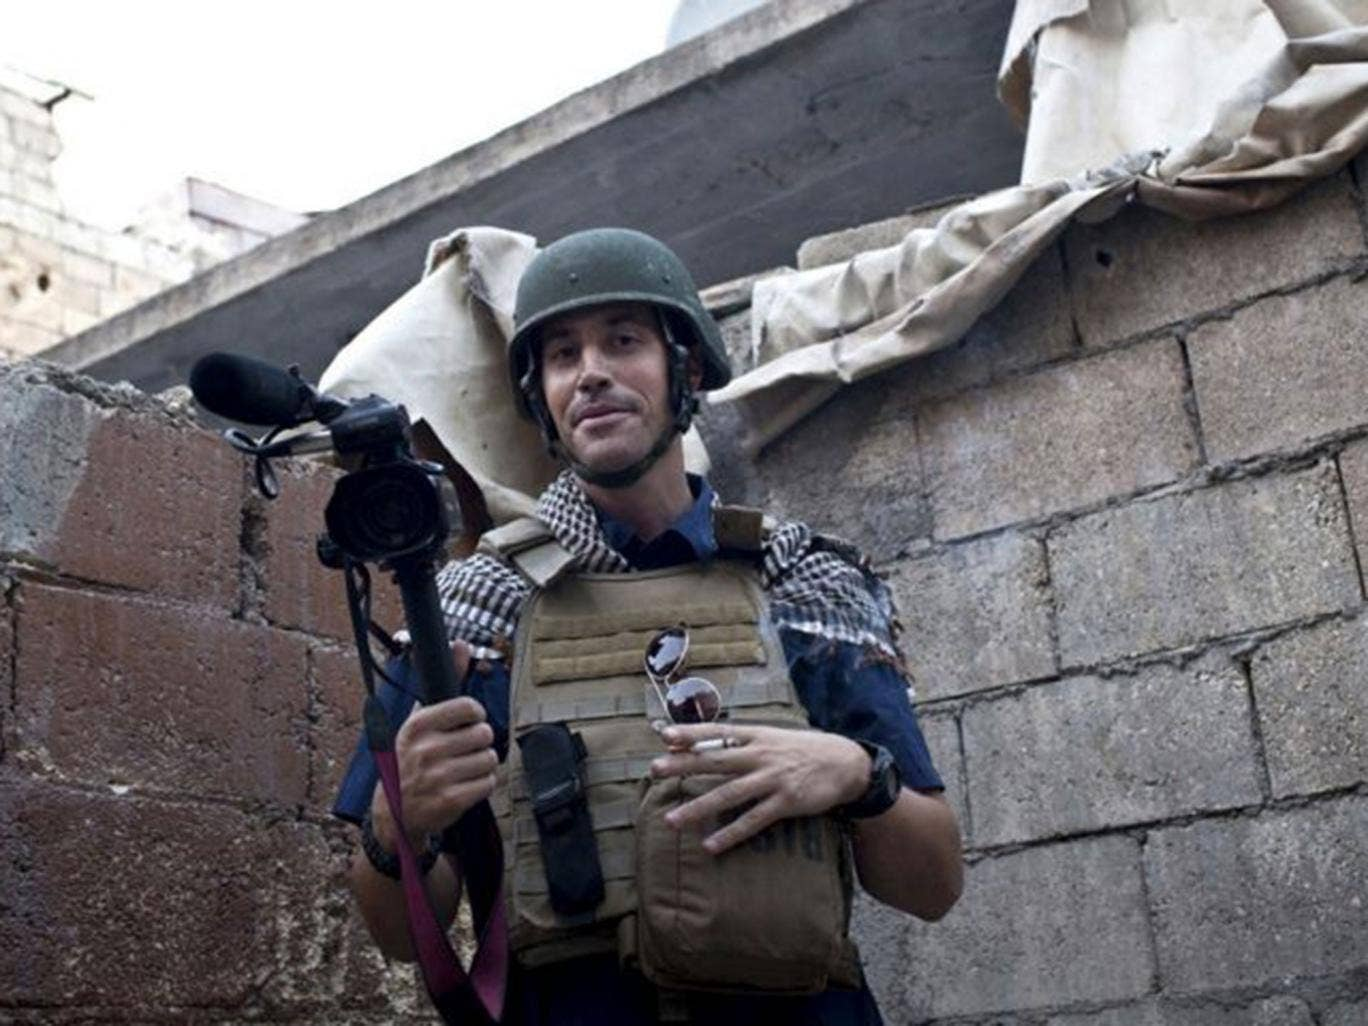 James Foley was kidnapped near Aleppo, Syria, with another journalist in 2012